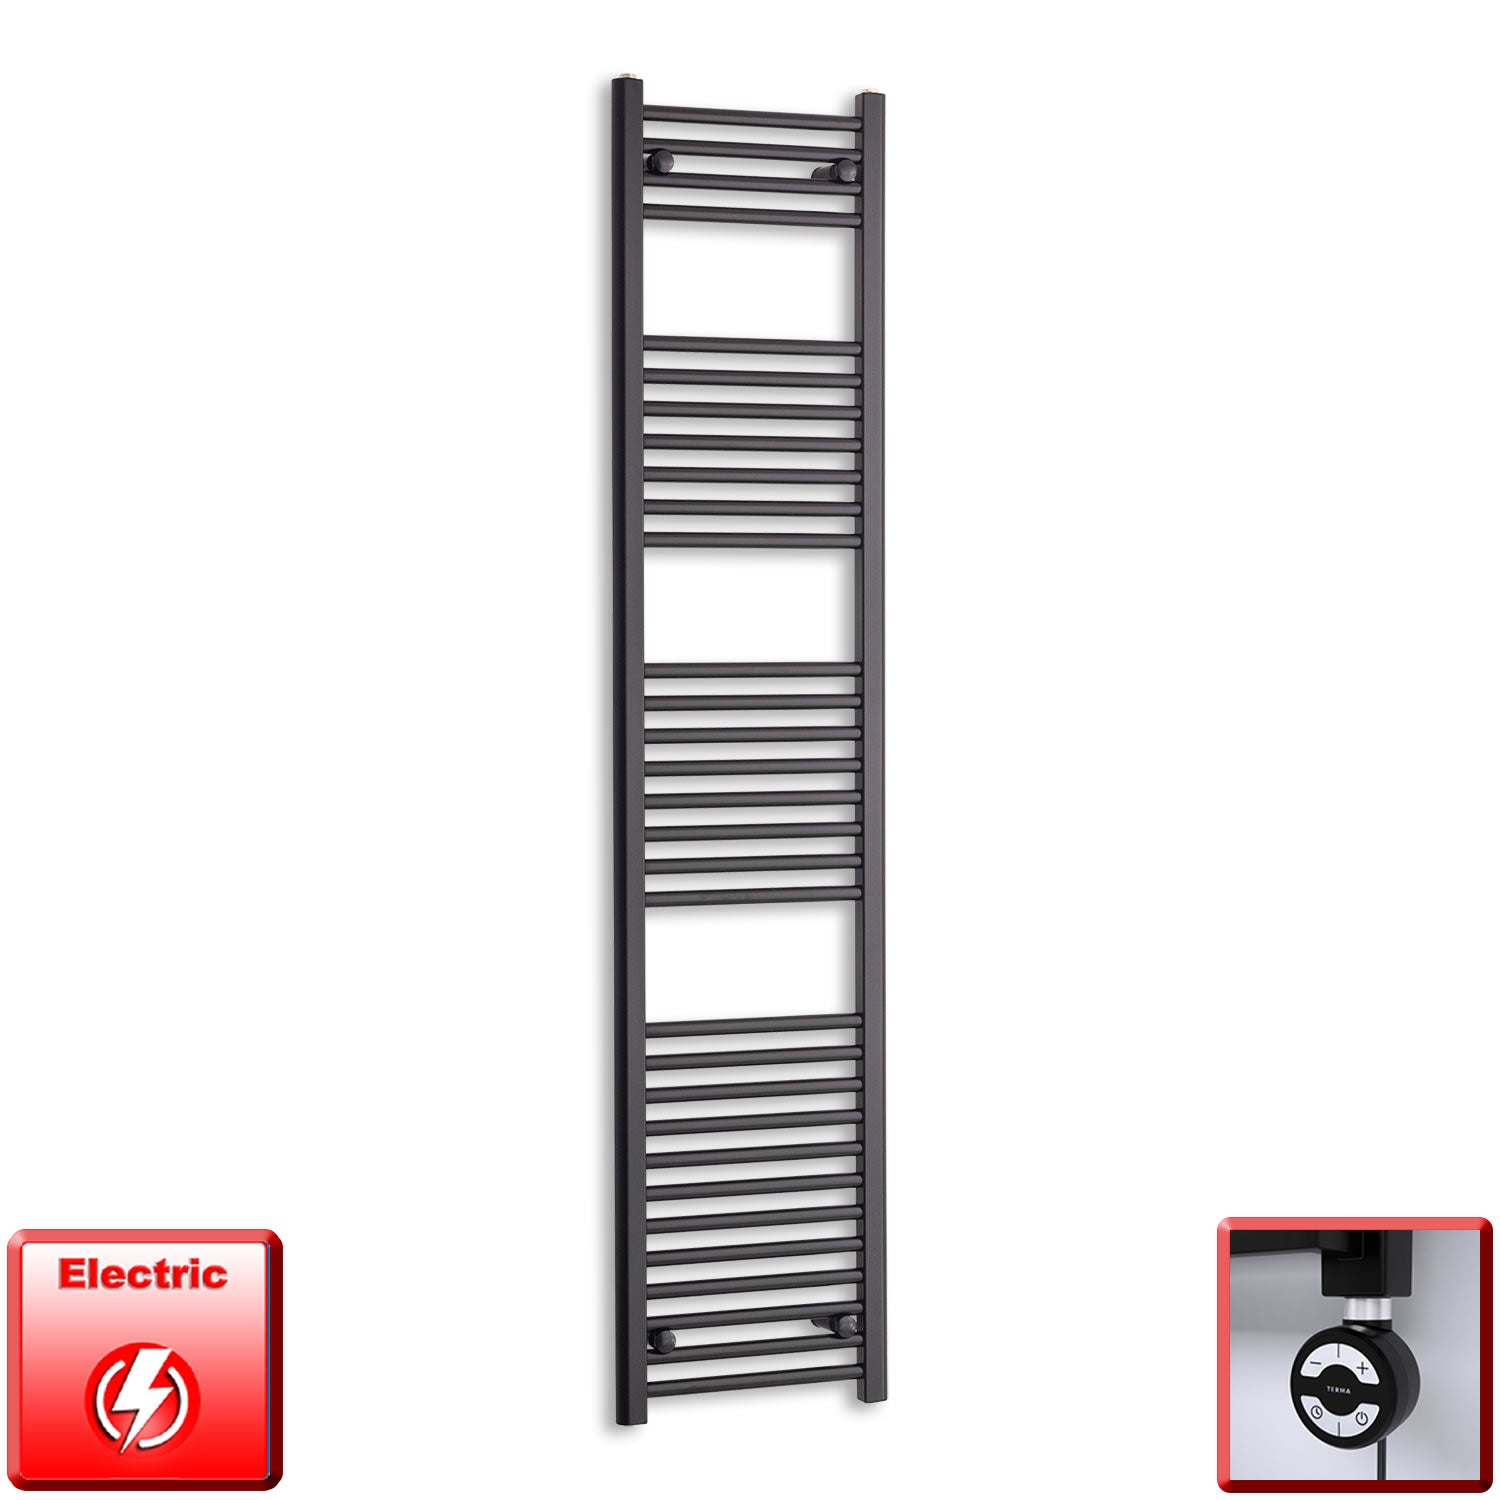 400mm Wide 1800mm High Pre-Filled Black Electric Towel Rail Radiator With Thermostatic MOA Element